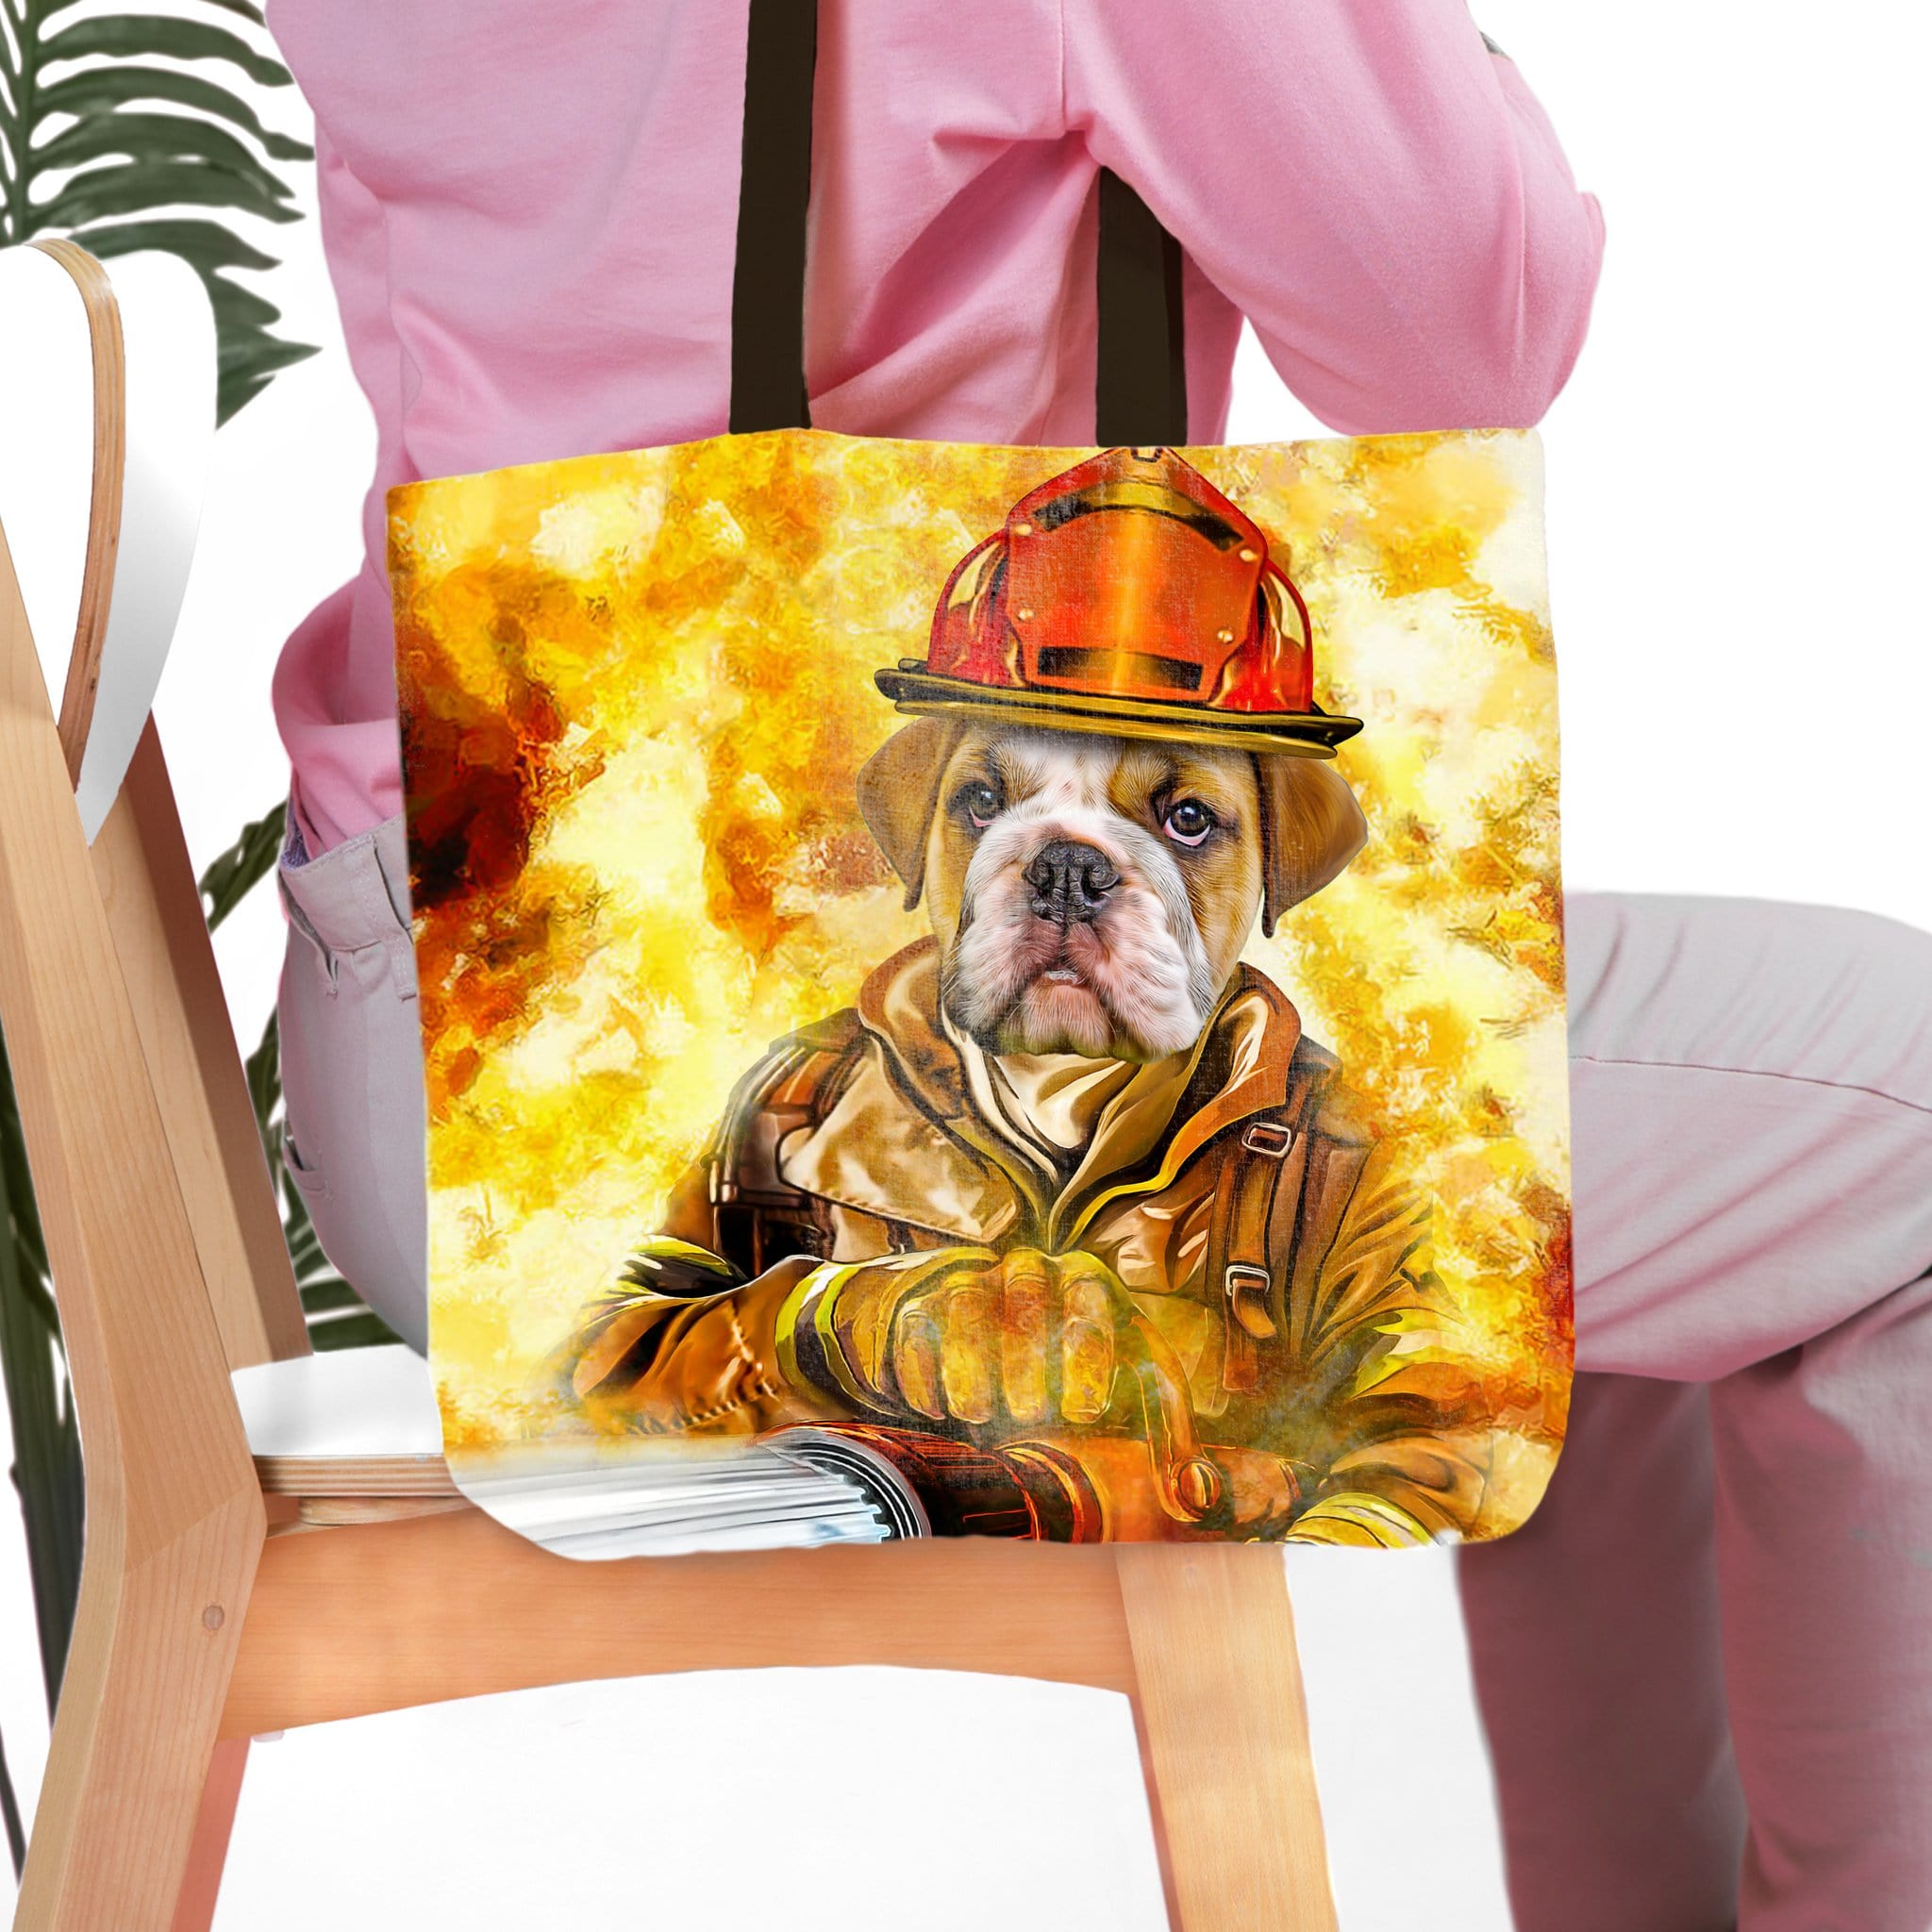 'The Firefighter' Personalized Tote Bag